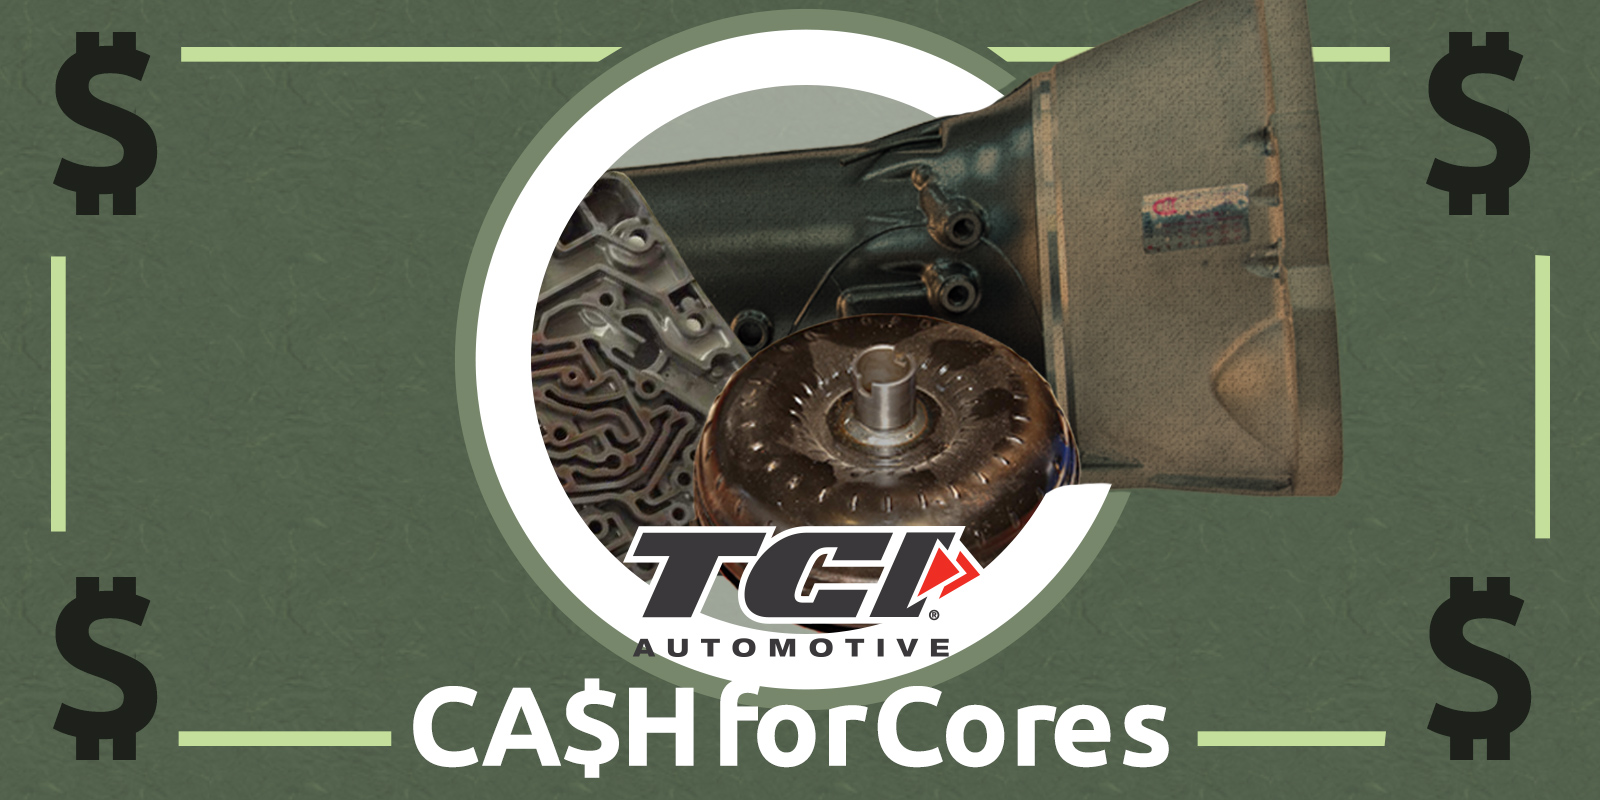 TCI will pay cash for cores